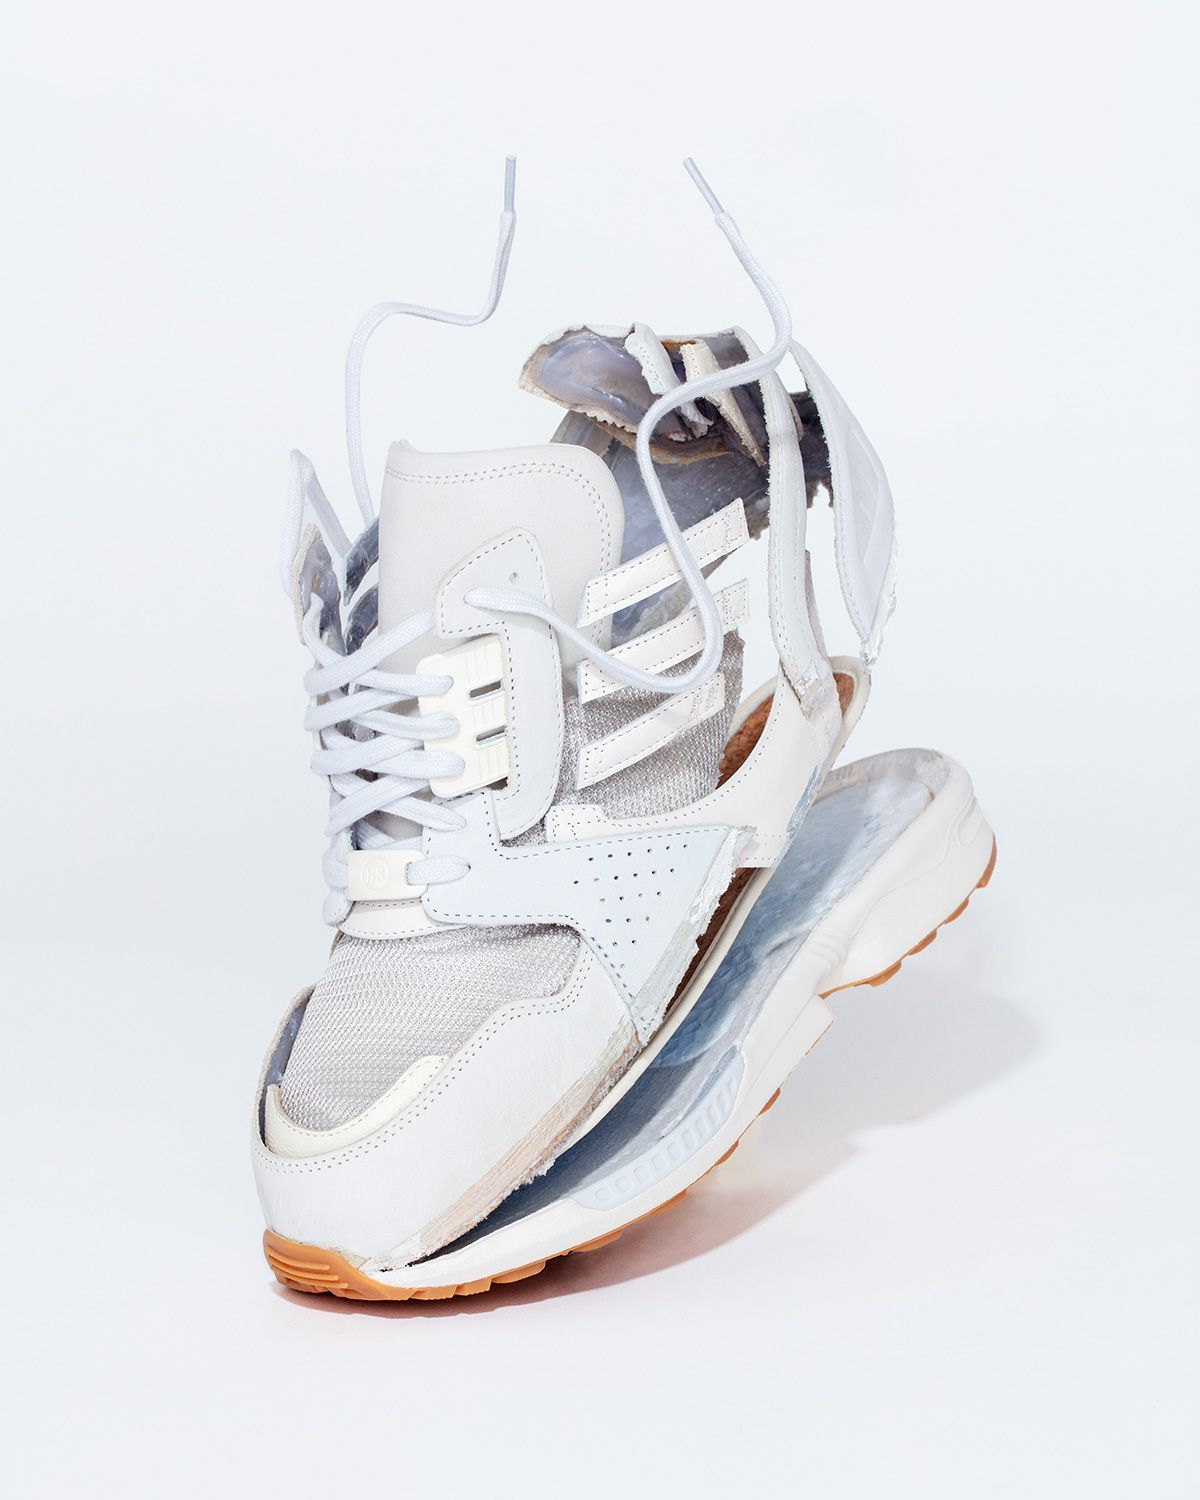 """Our adidas ZX 8000 """"Qualität"""" Is All About Craftsmanship 15"""